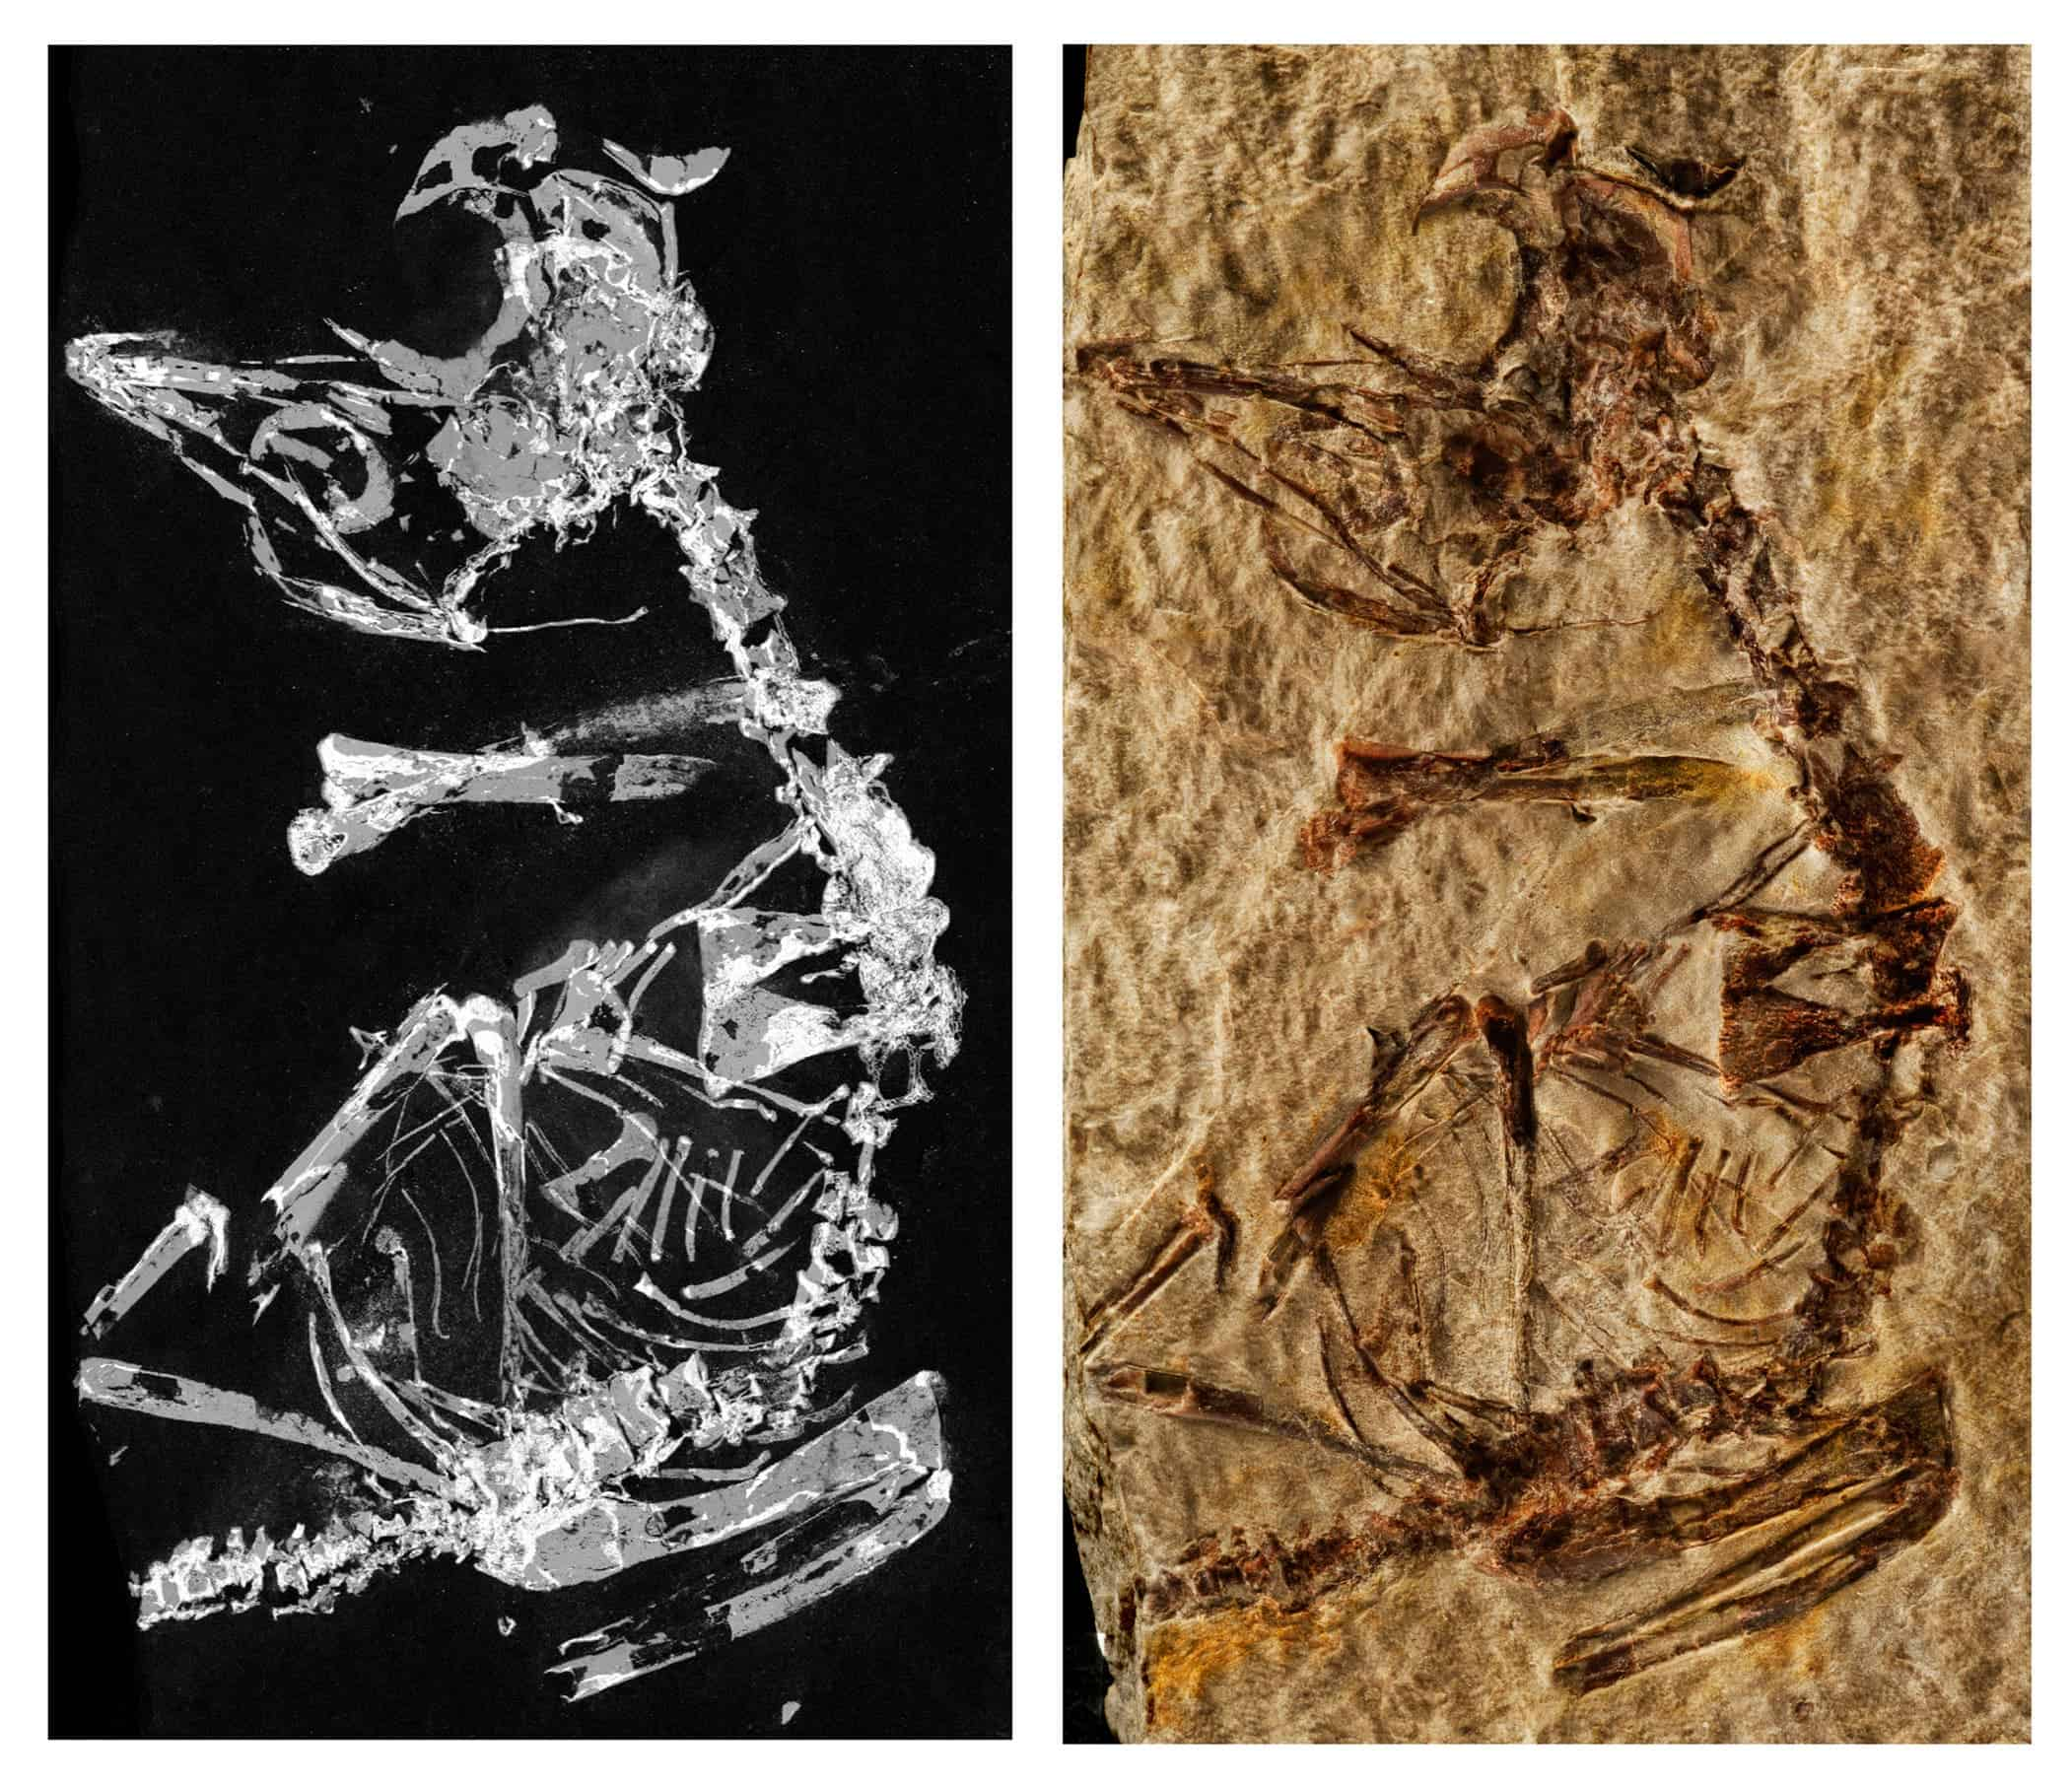 Tiny 127 million year old fossil sheds light on early birds